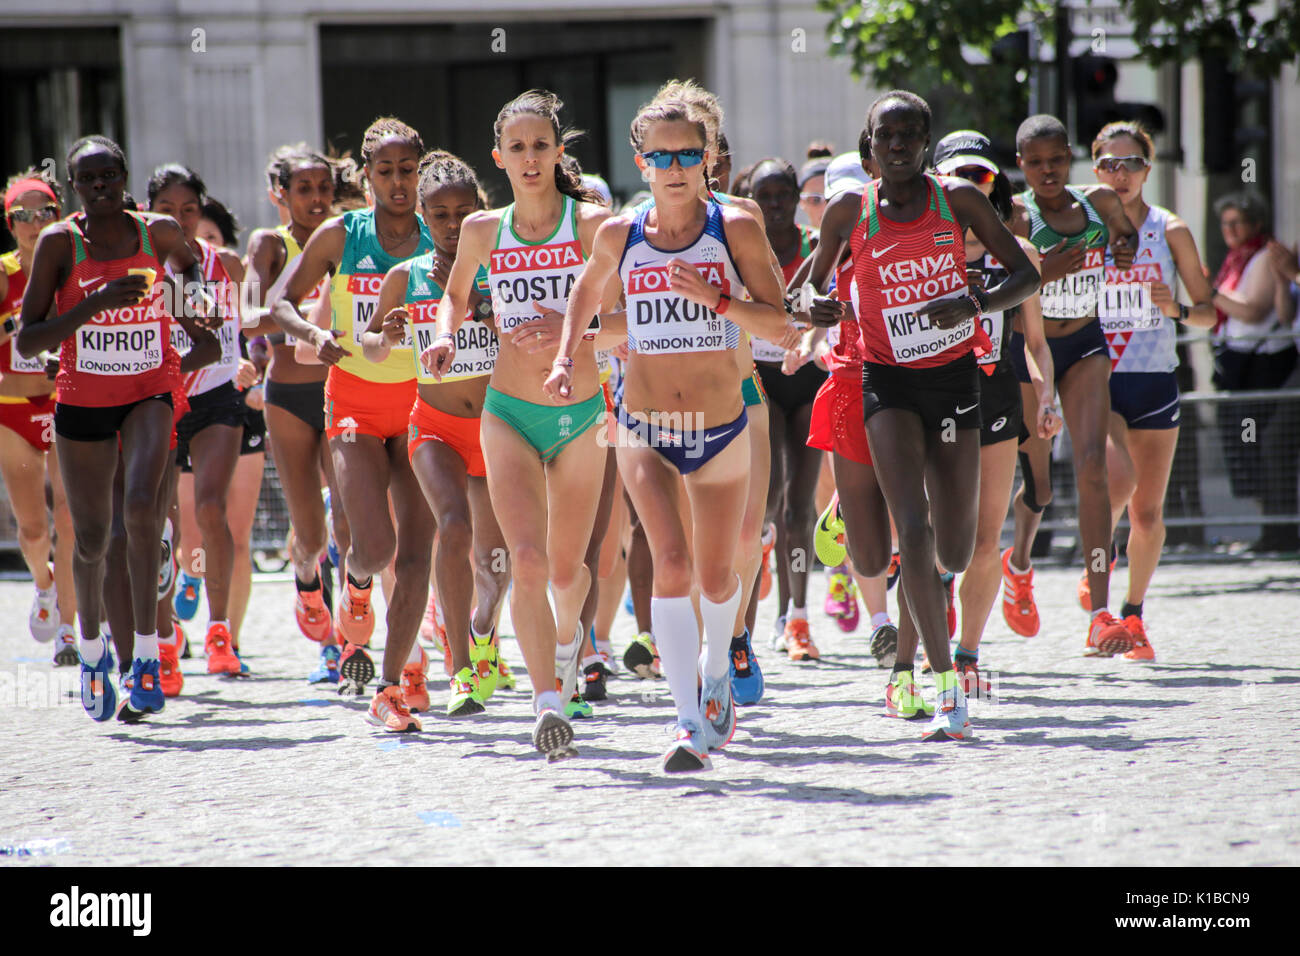 6 August 2017, London: Alyson Dixon (GBR) leads the race early in the IAAF World Championships Women's Marathon 2017 - Stock Image